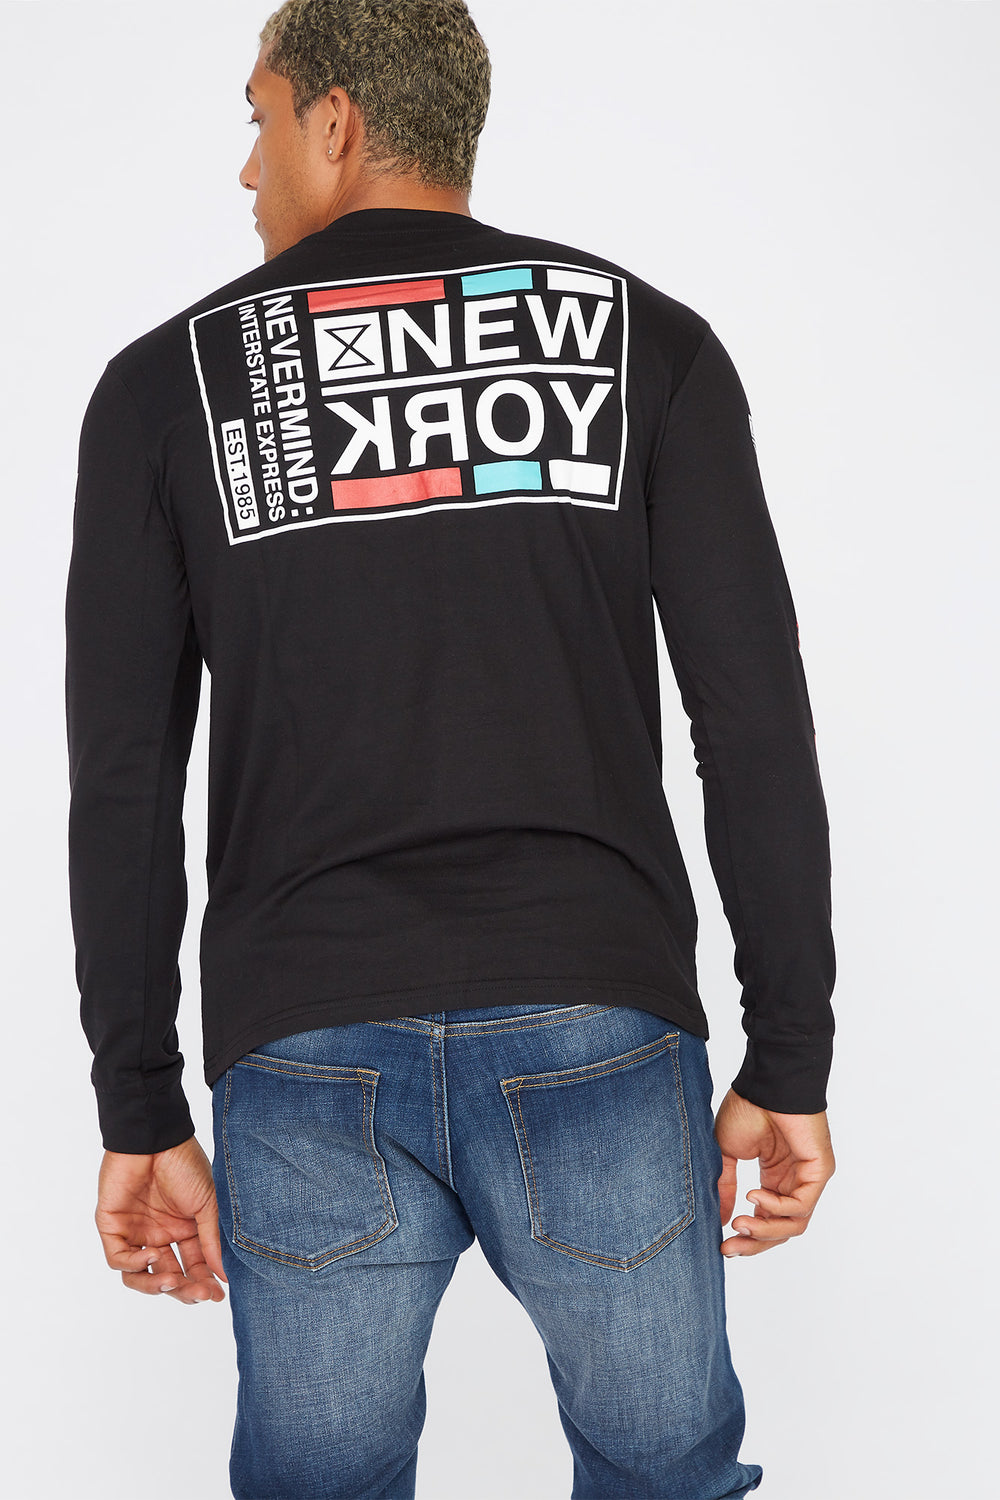 Graphic New York Long Sleeve Black